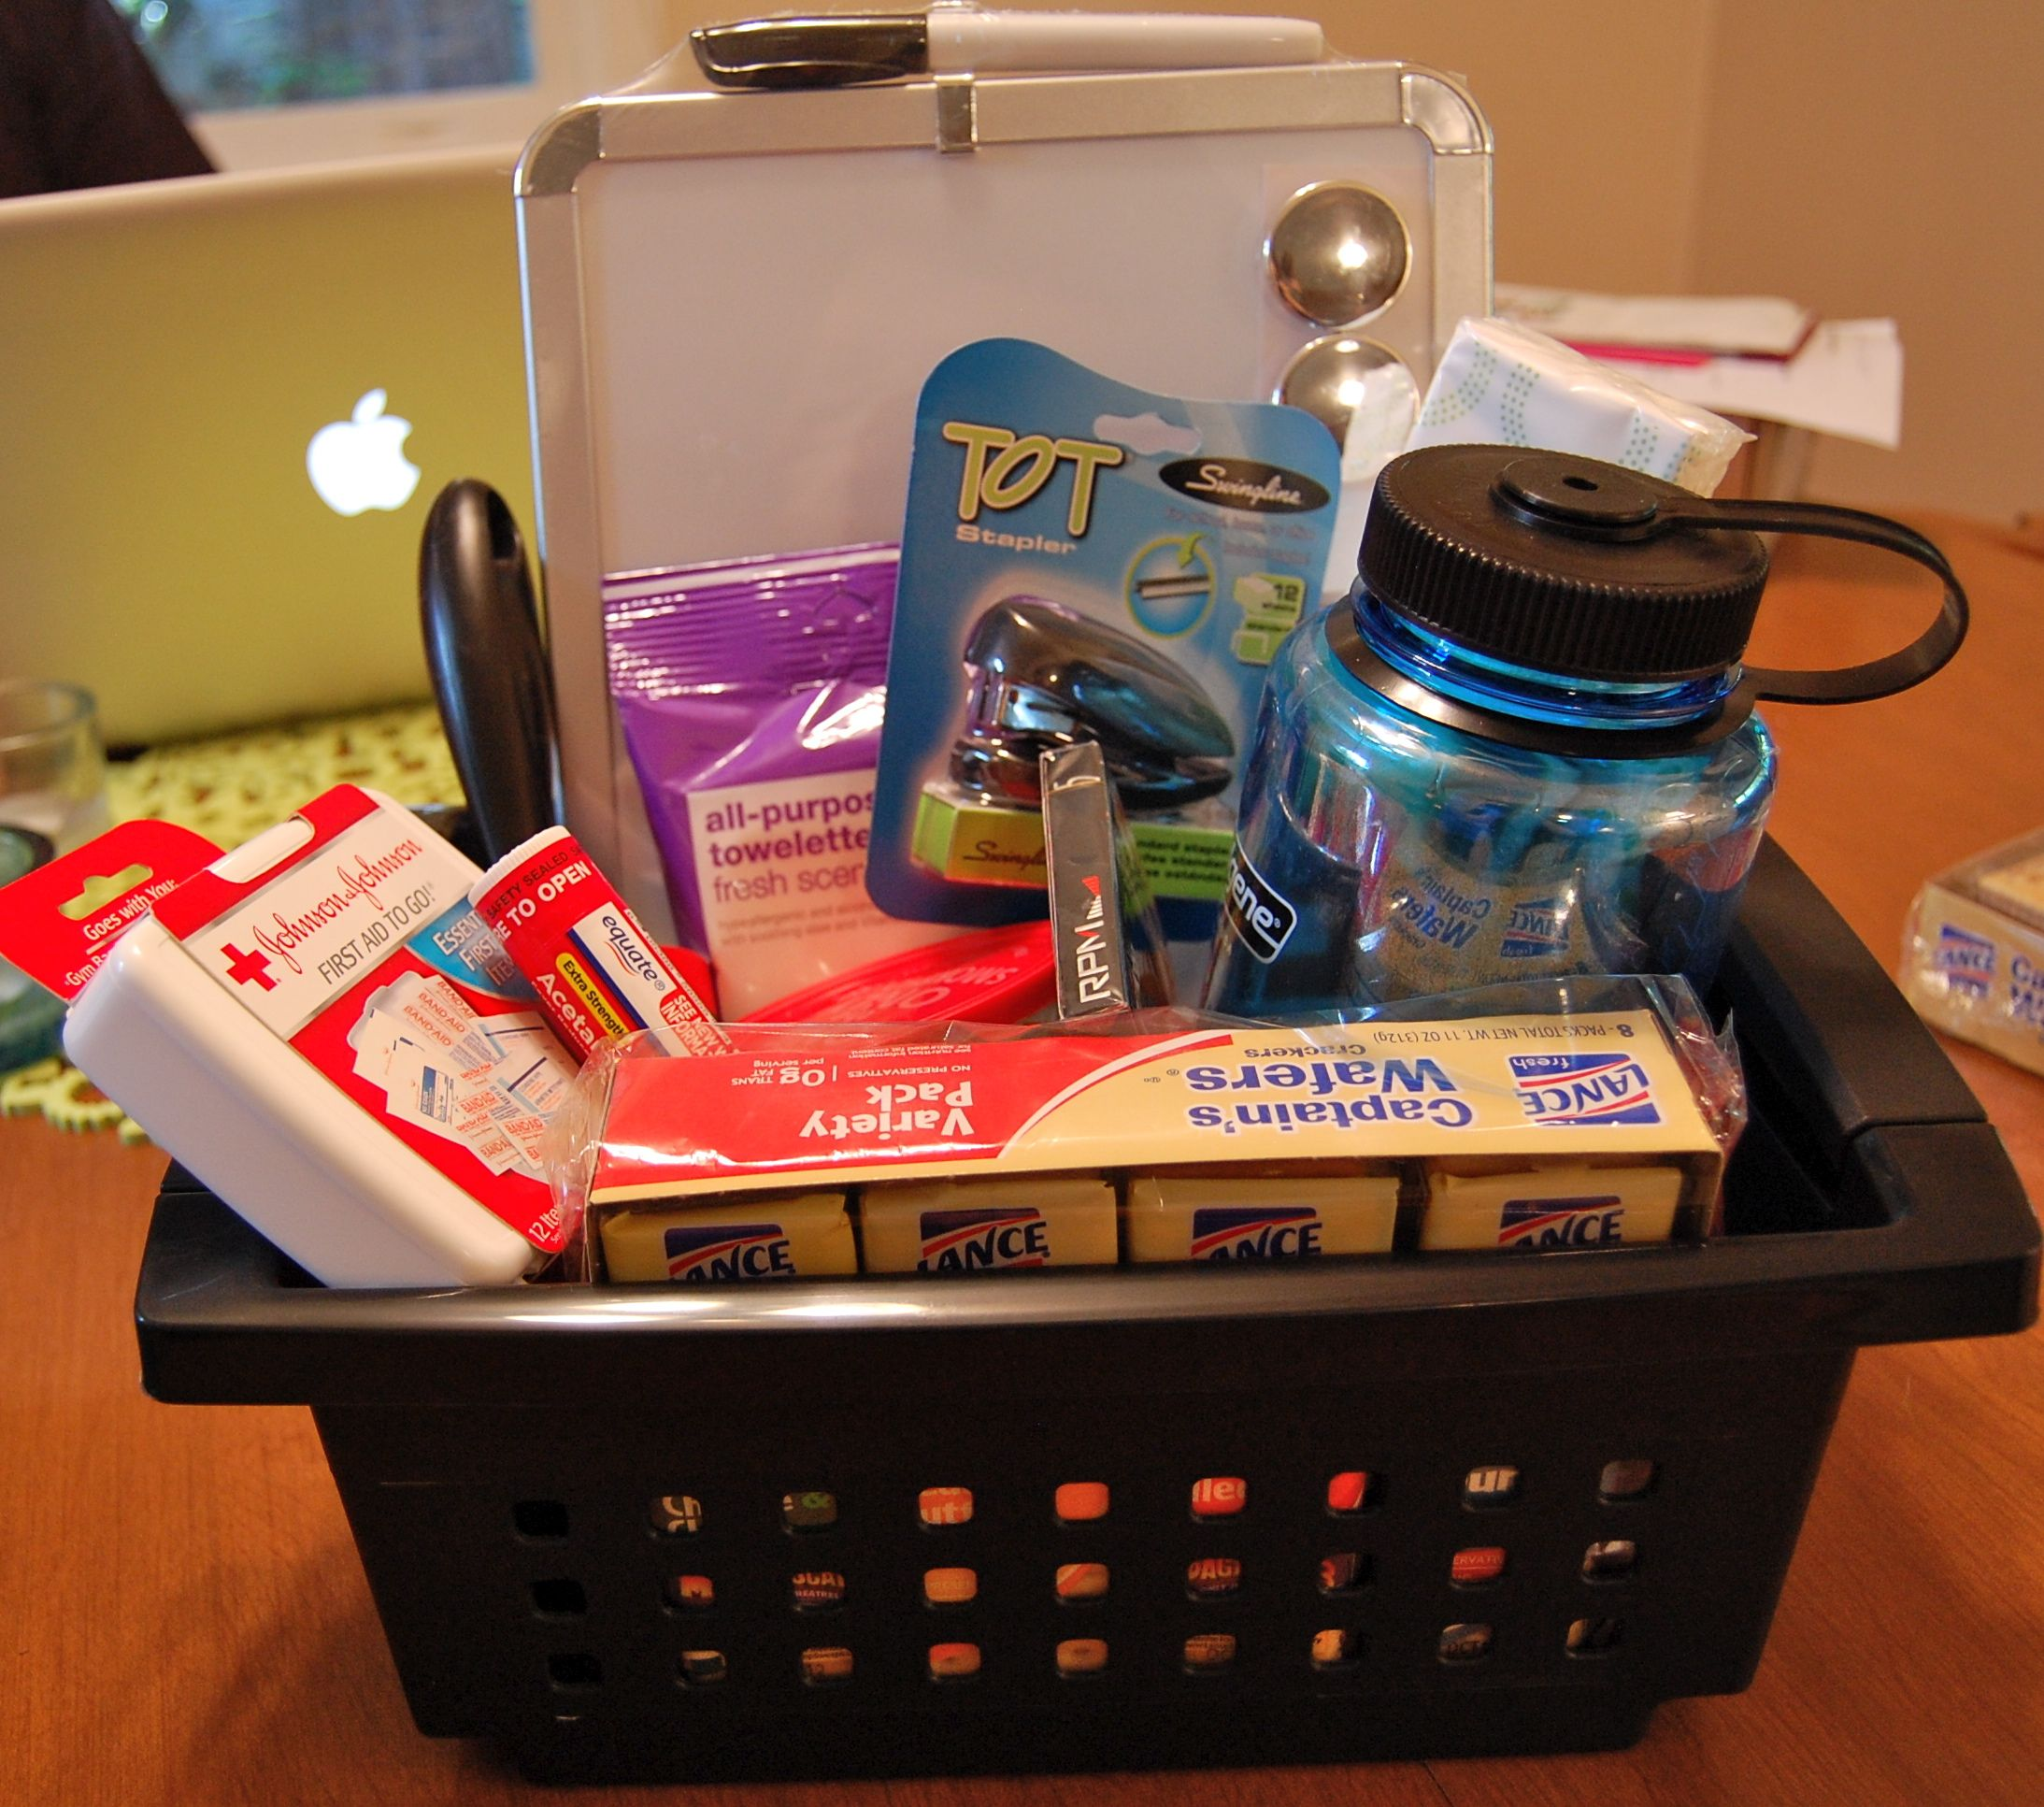 College bound student gift basket ideas college bound college bound student gift basket ideas negle Choice Image